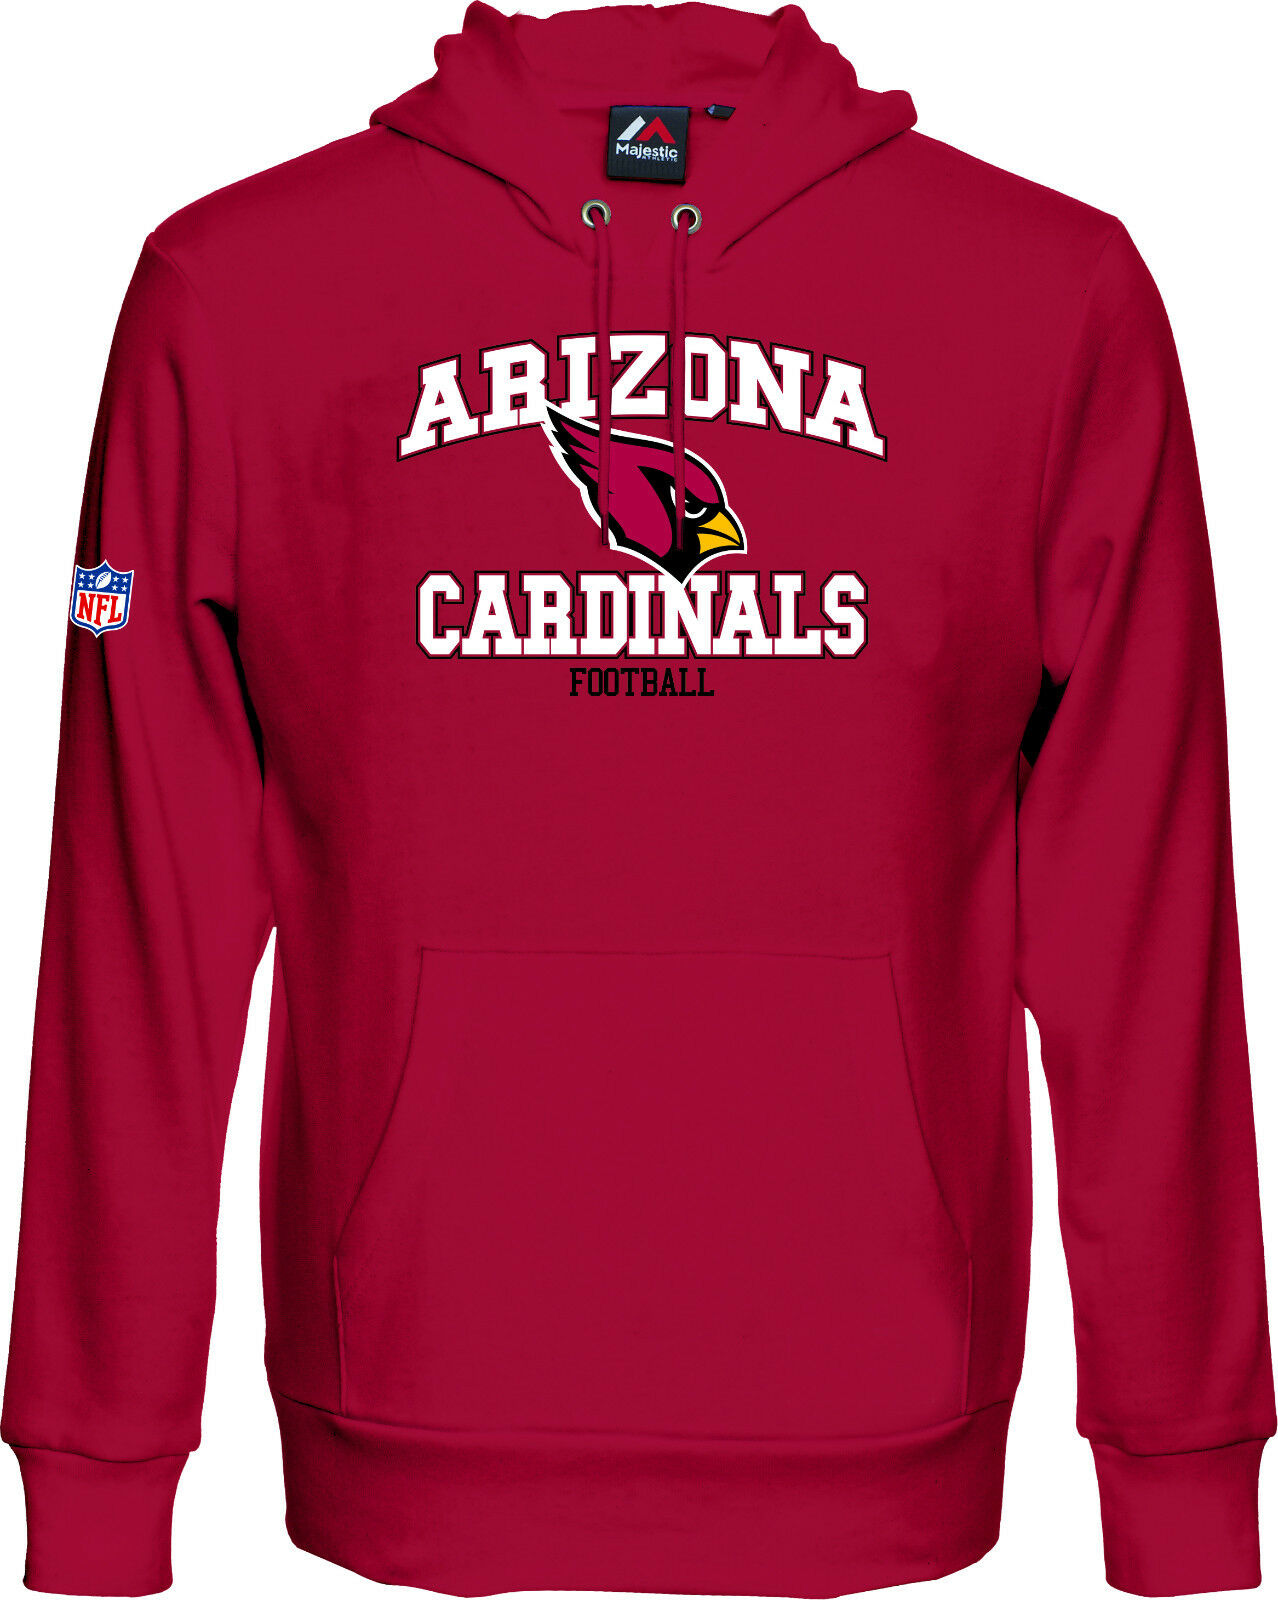 NFL FOOTBALL ARIZONA CARDINALS Hoody kaputzenpullover Greatness Hooded Sweater